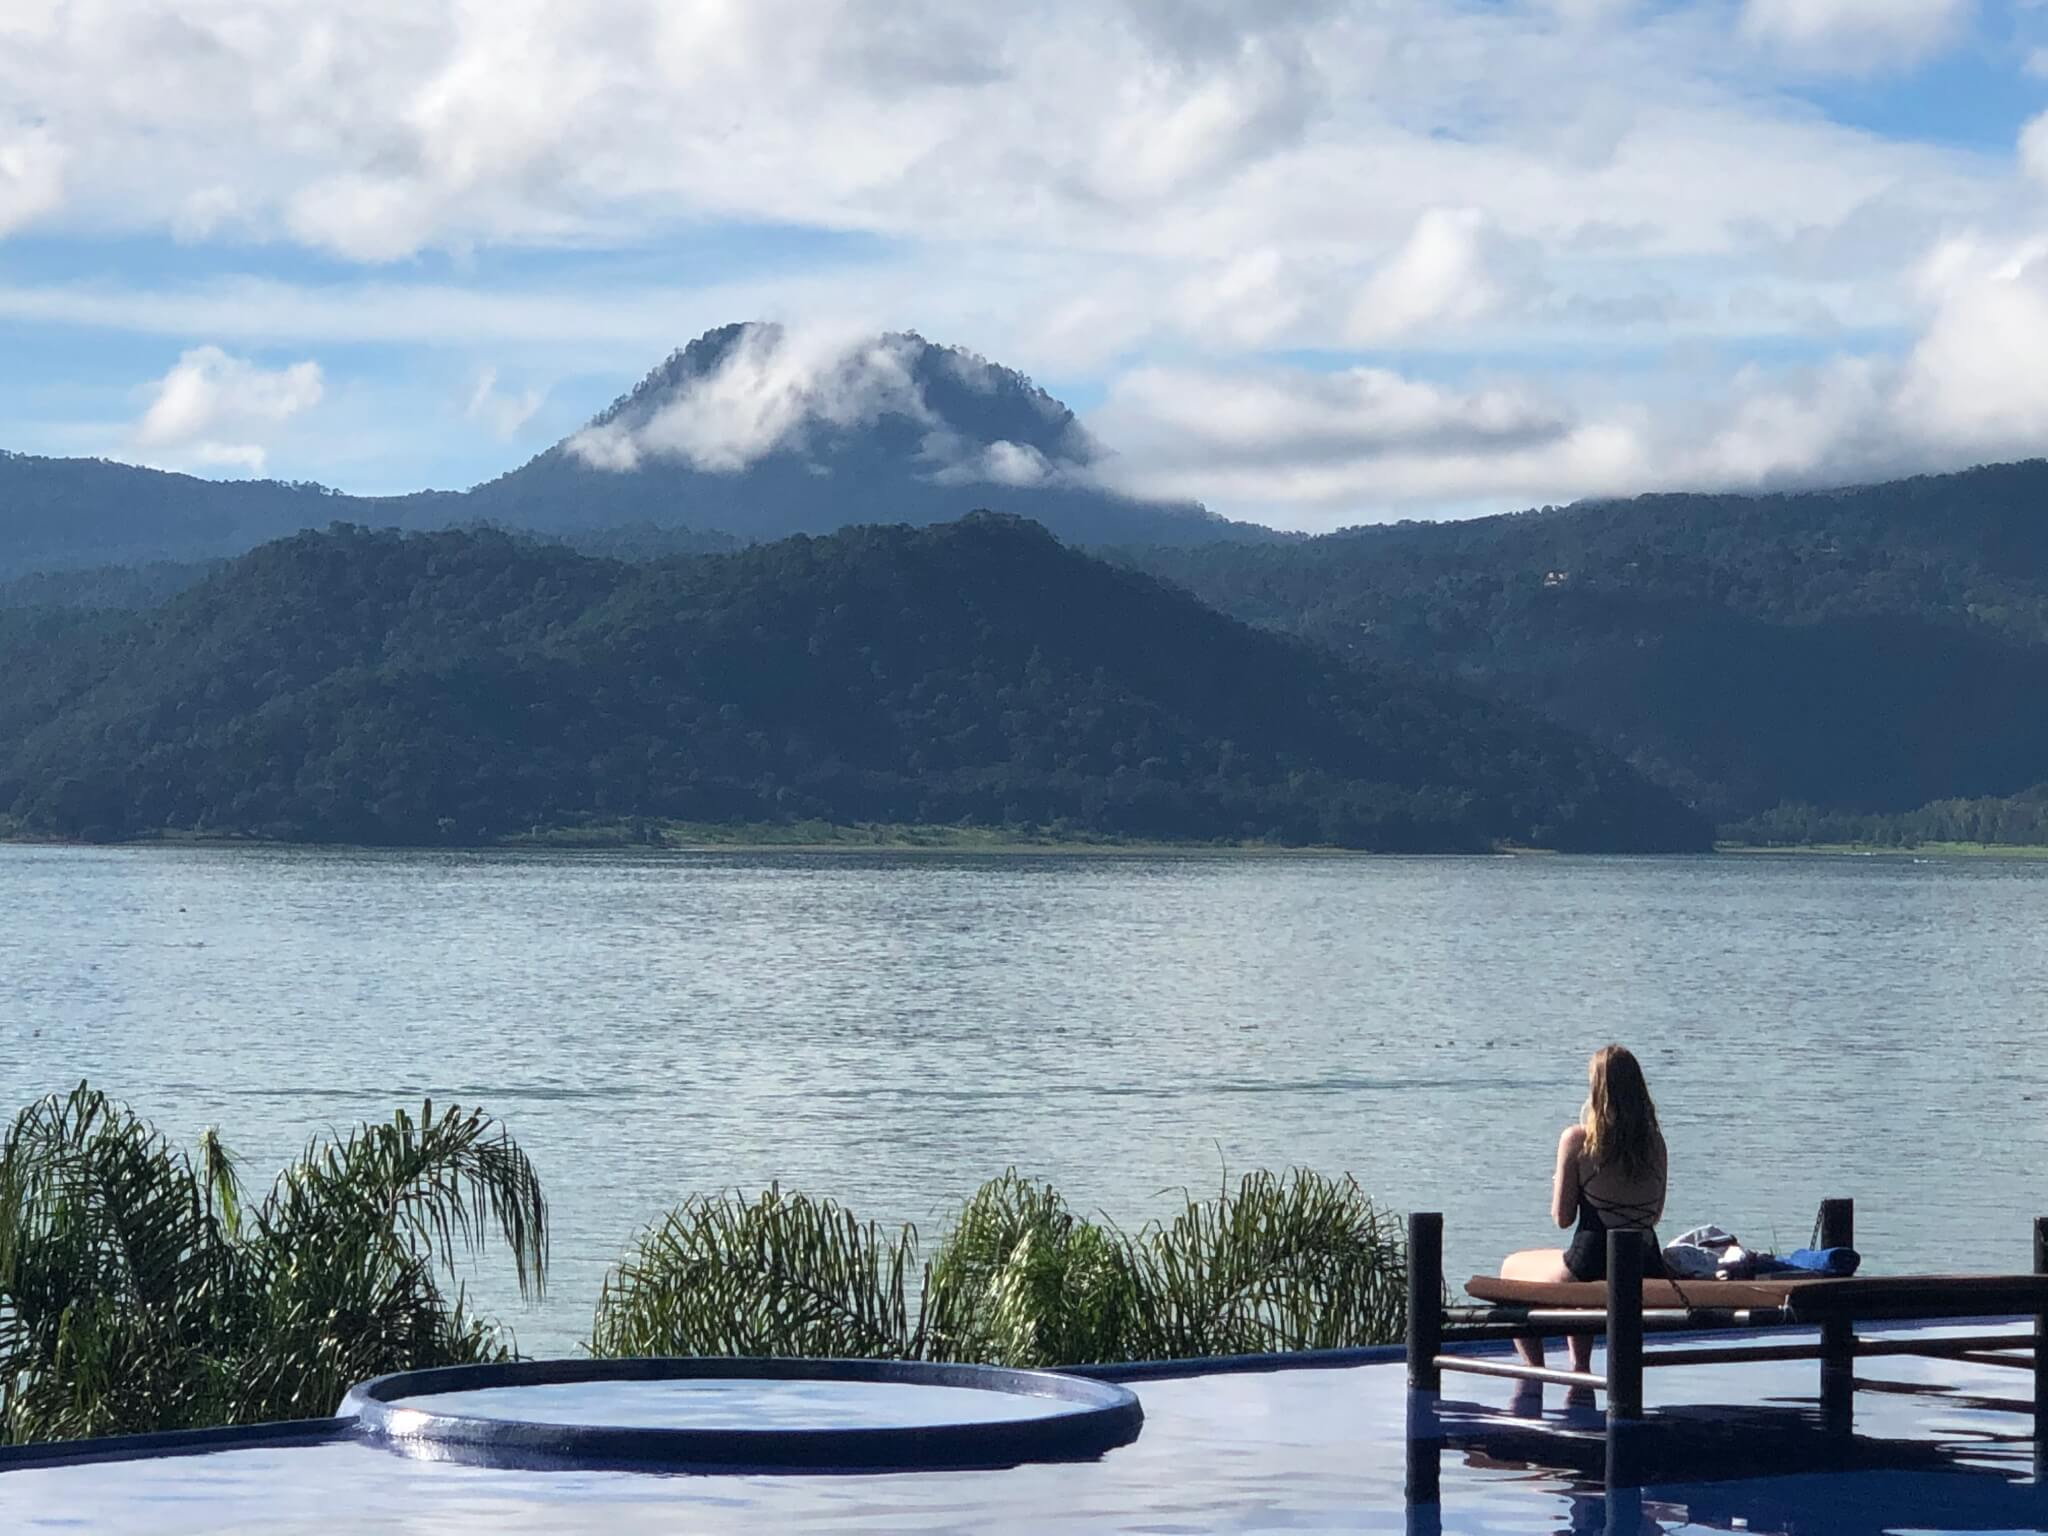 Hotels in Valle de Bravo | View of the lake at El Santuario